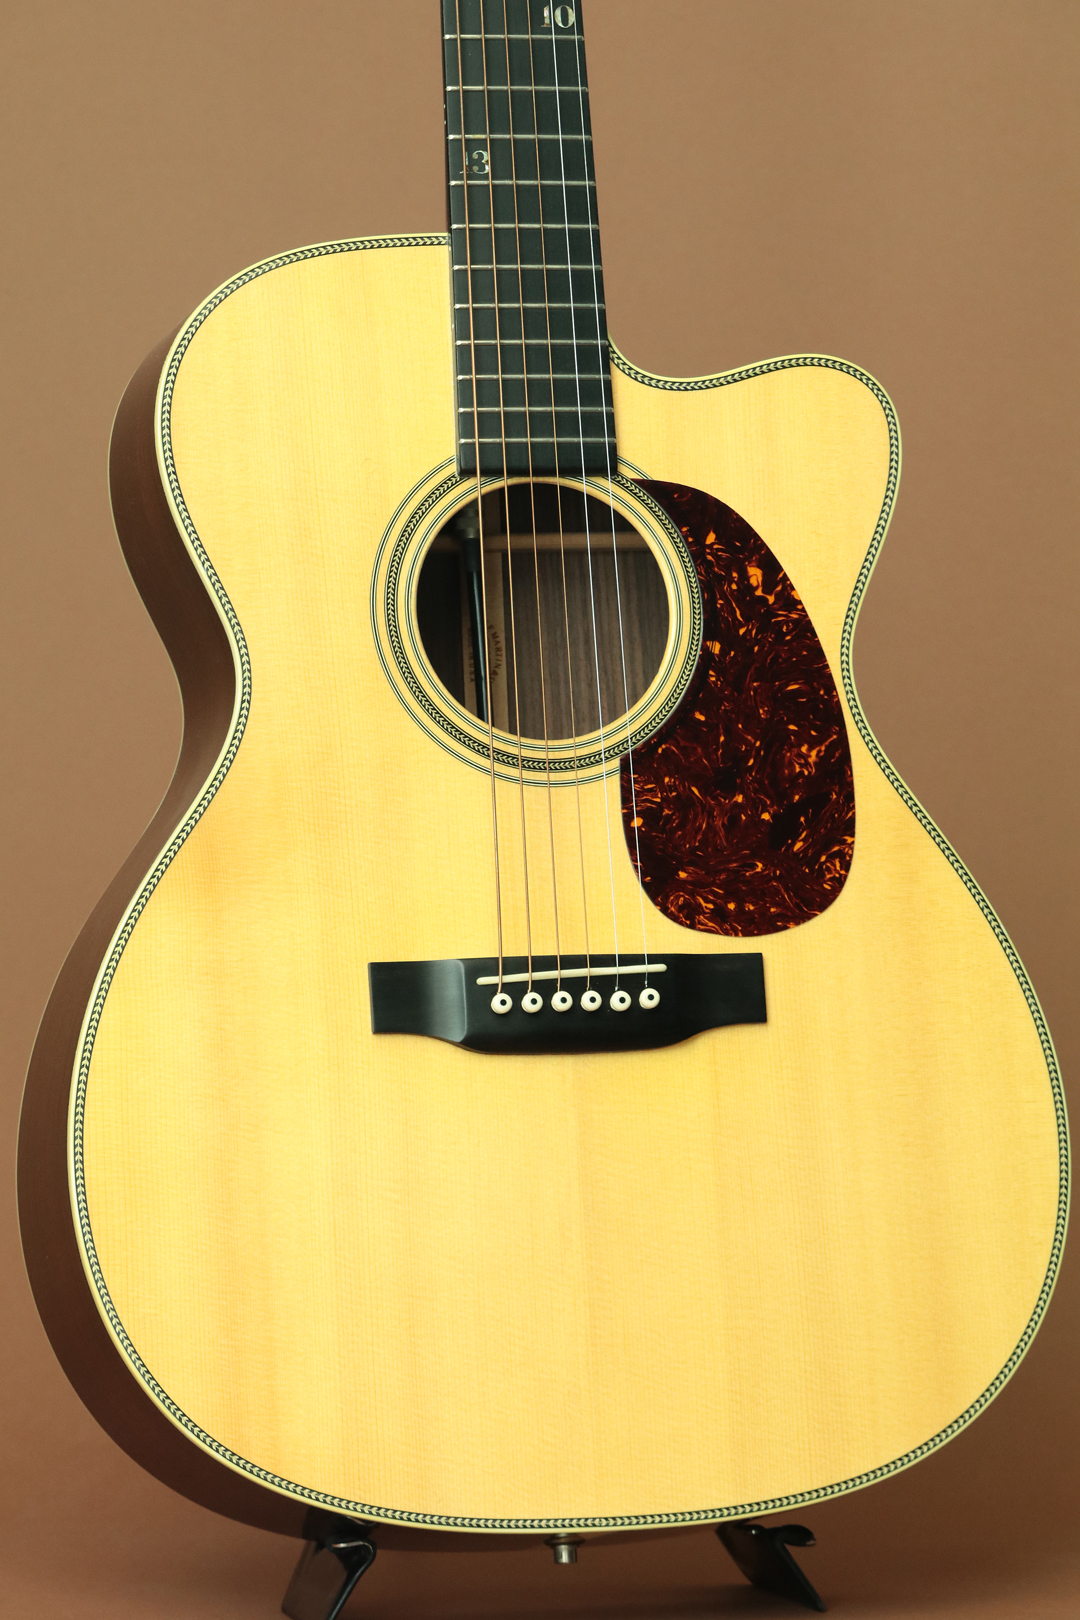 MARTIN CTM OOOC-28 1310 Isato Nakagawa 45th Anni. with M-Factory #202 マーチン サブ画像1